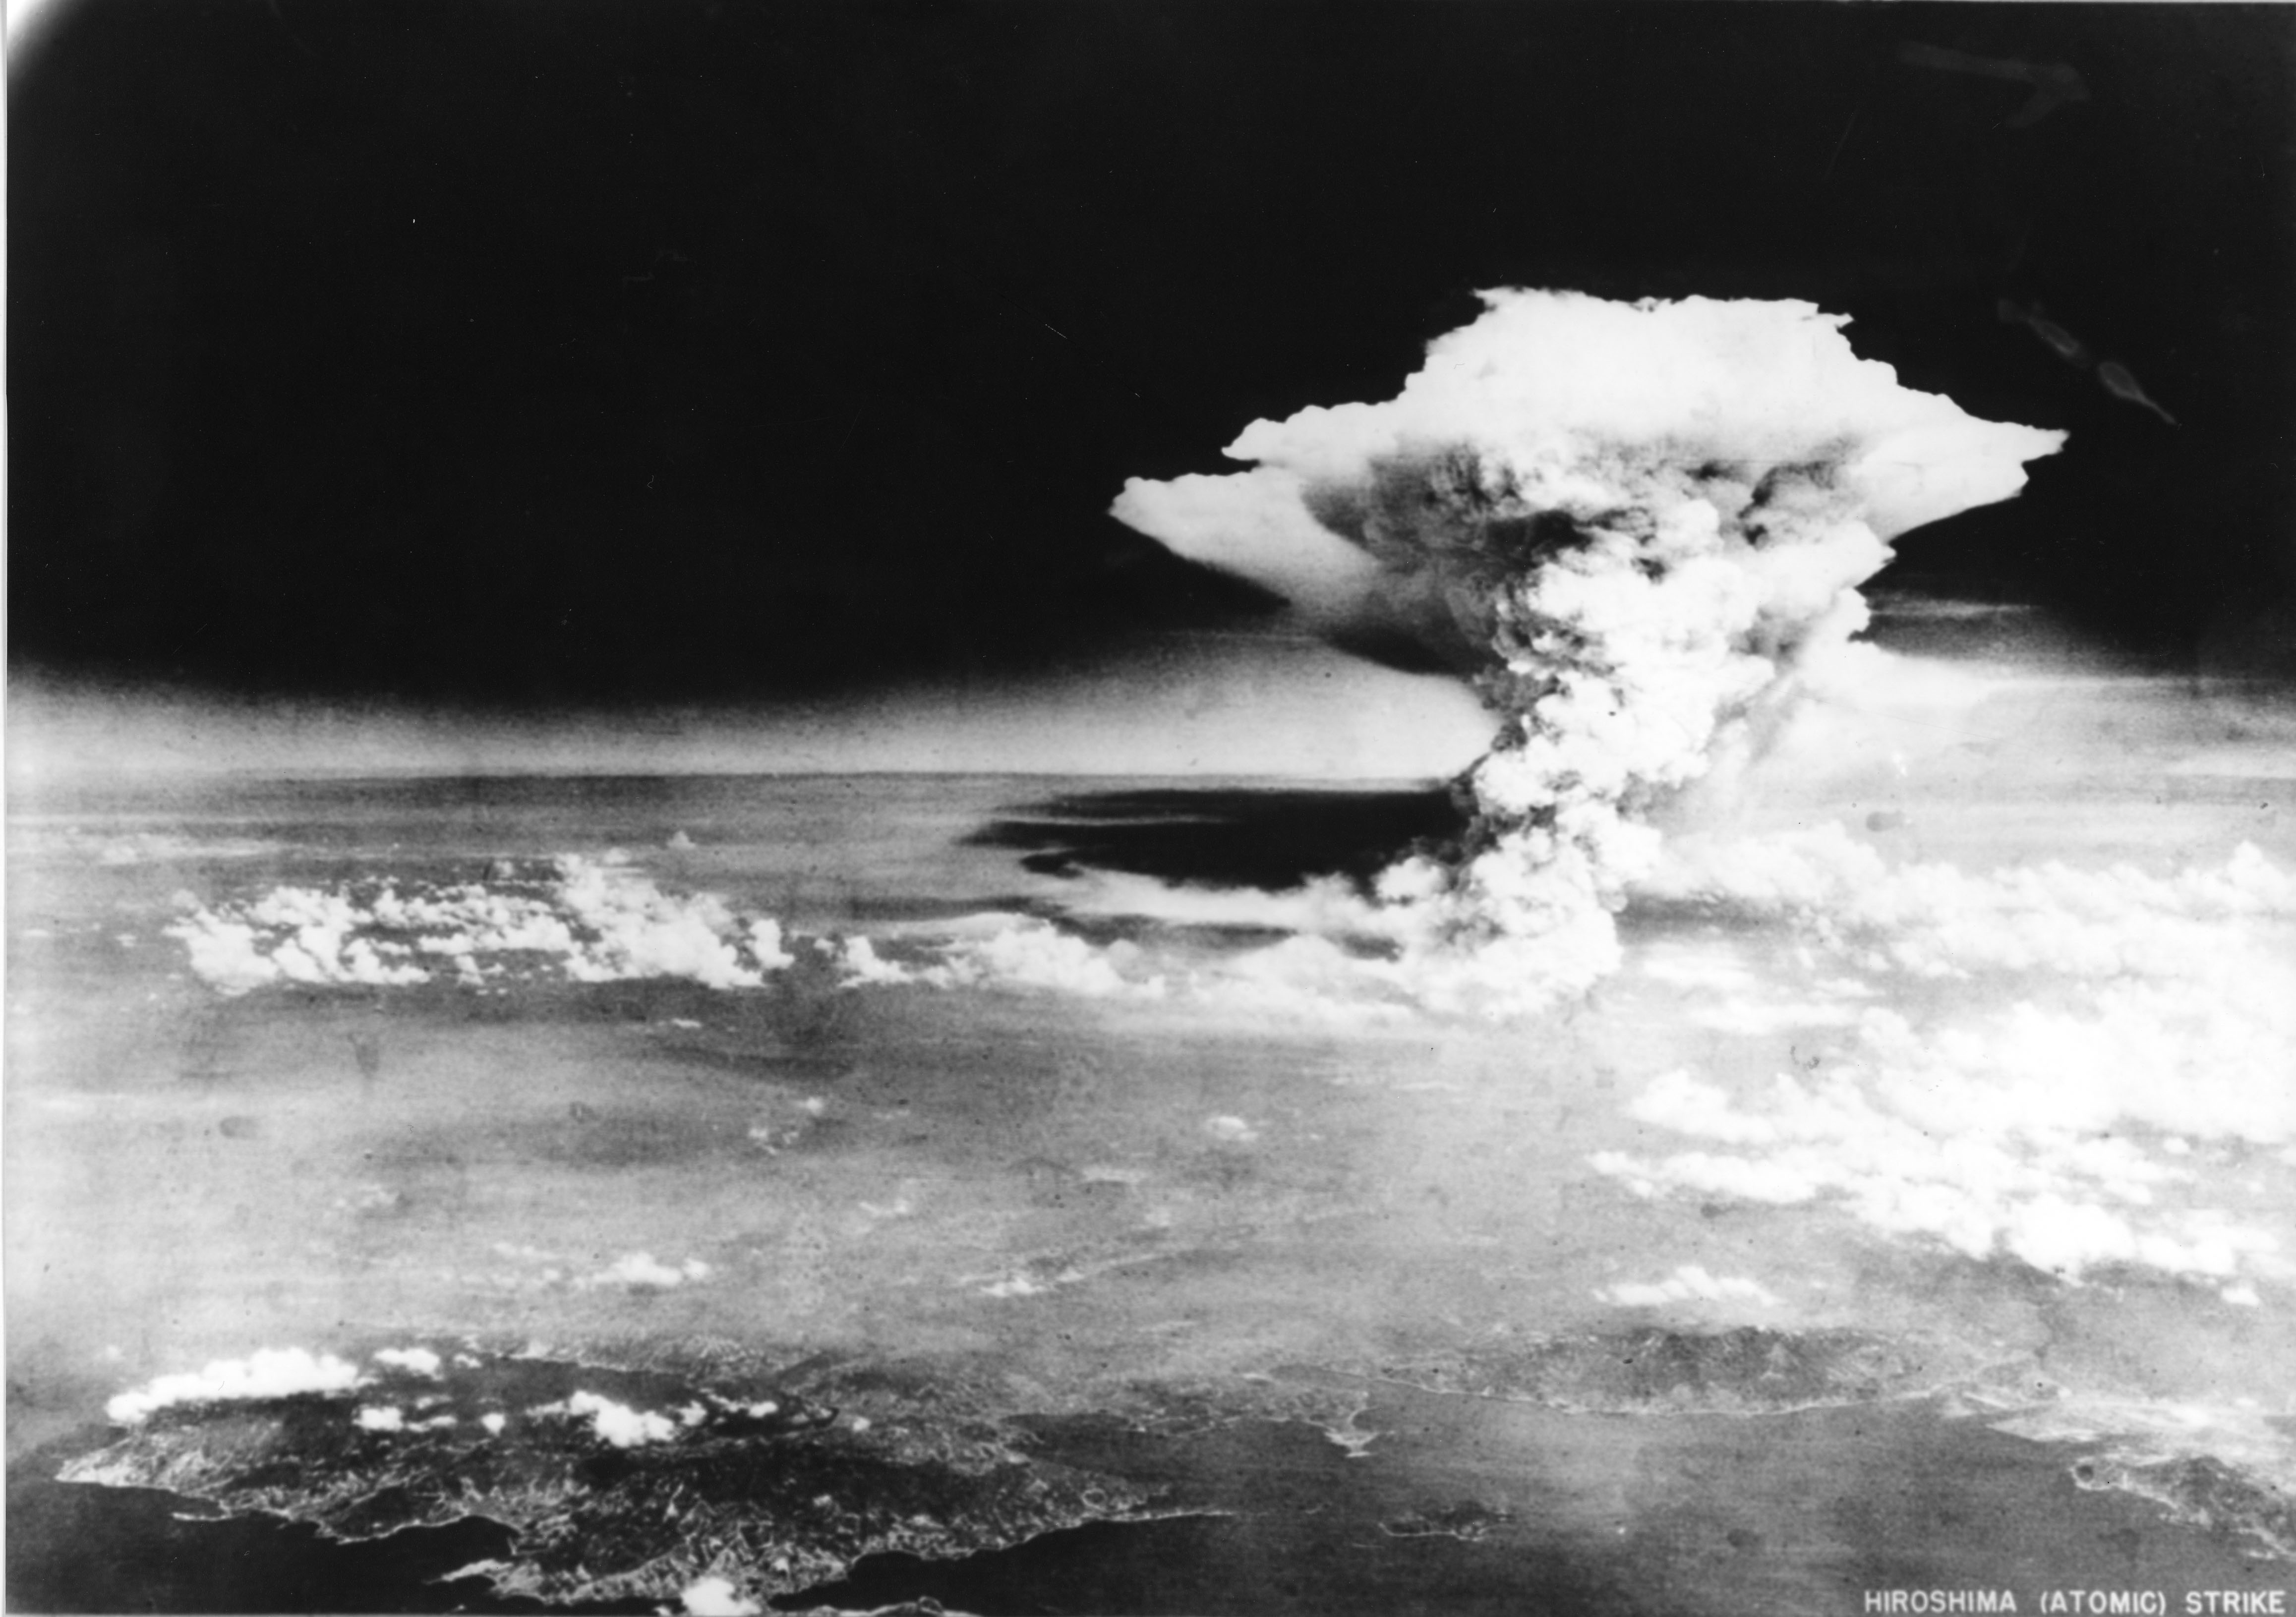 69 years of Hiroshima and Nagasaki